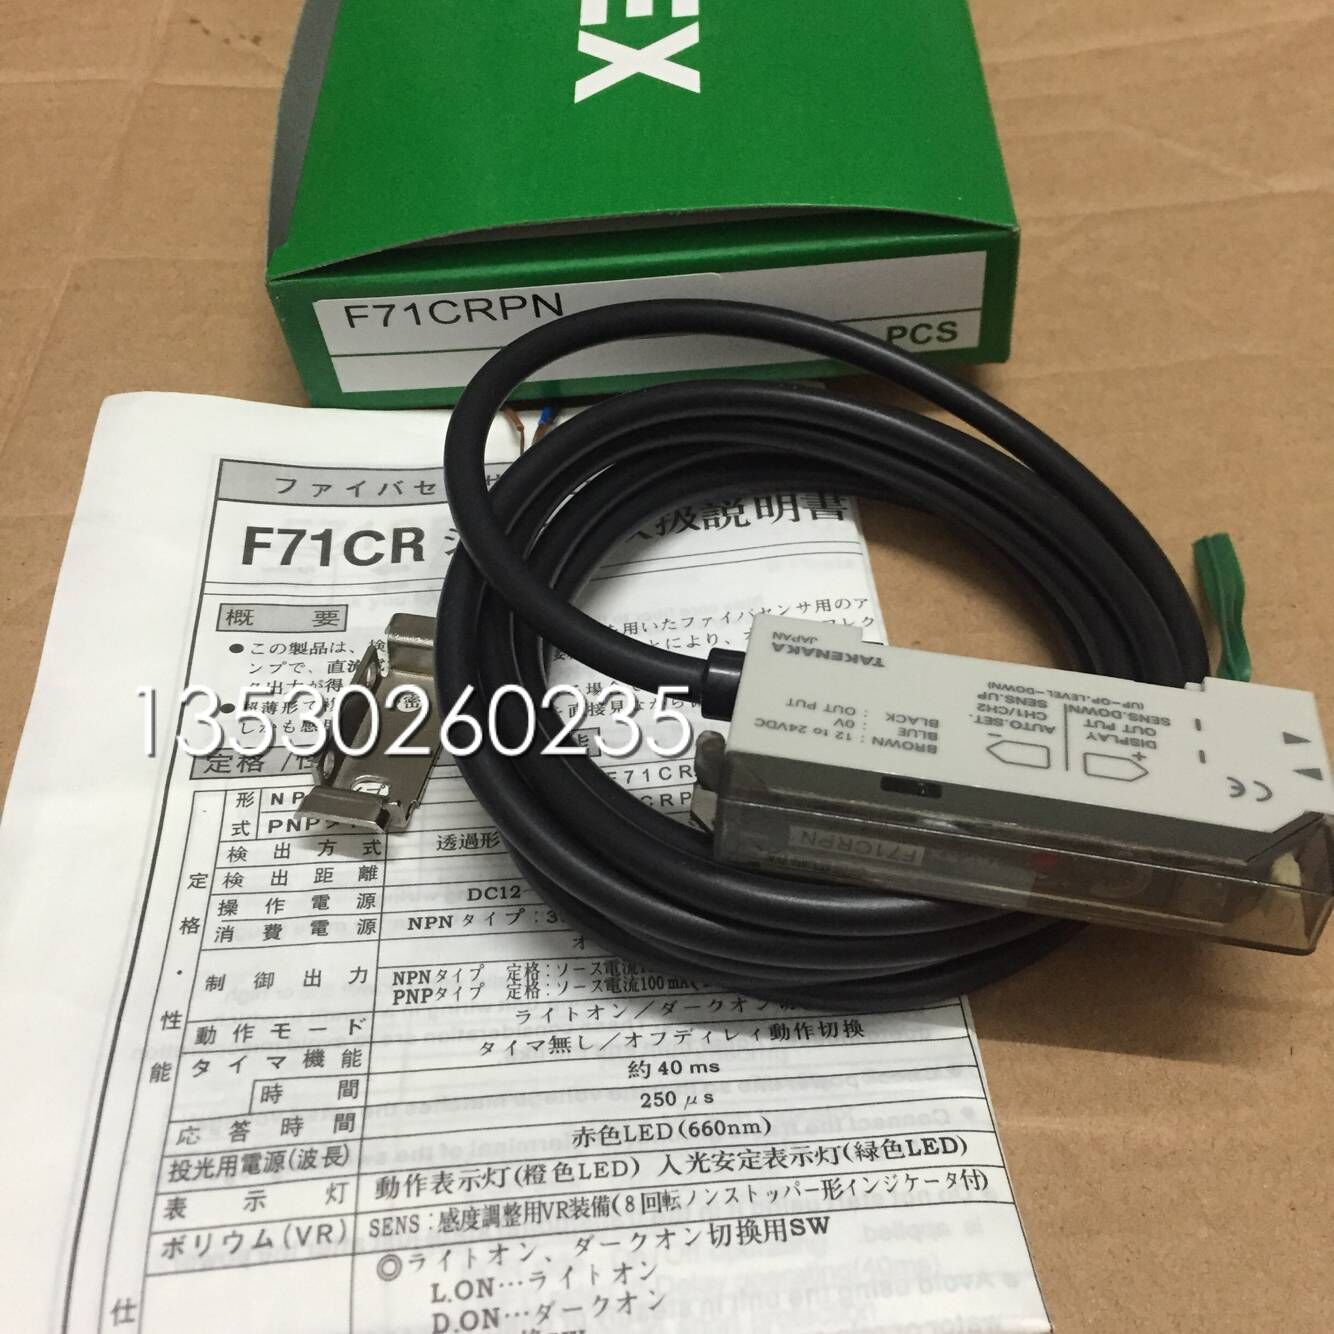 F71CRPN F70ARPN Photoelectric Switch